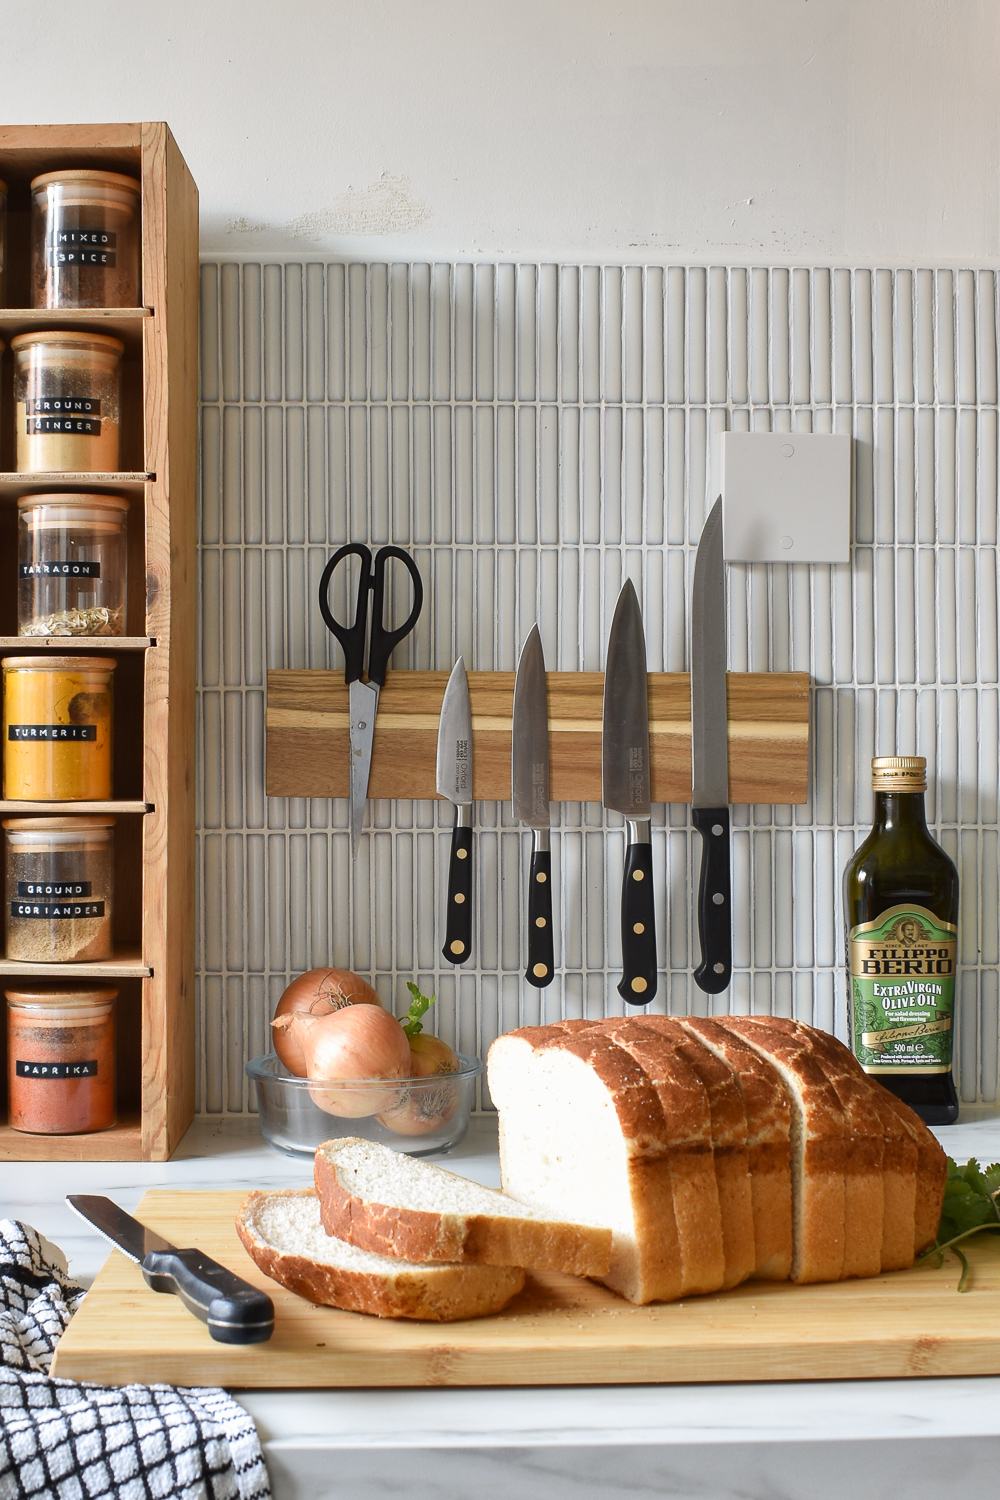 Wooden diy magnetic spice rack attacked to kit kat tiles. A loaf of bread on a chopping board in front of the knife rack on countertops,